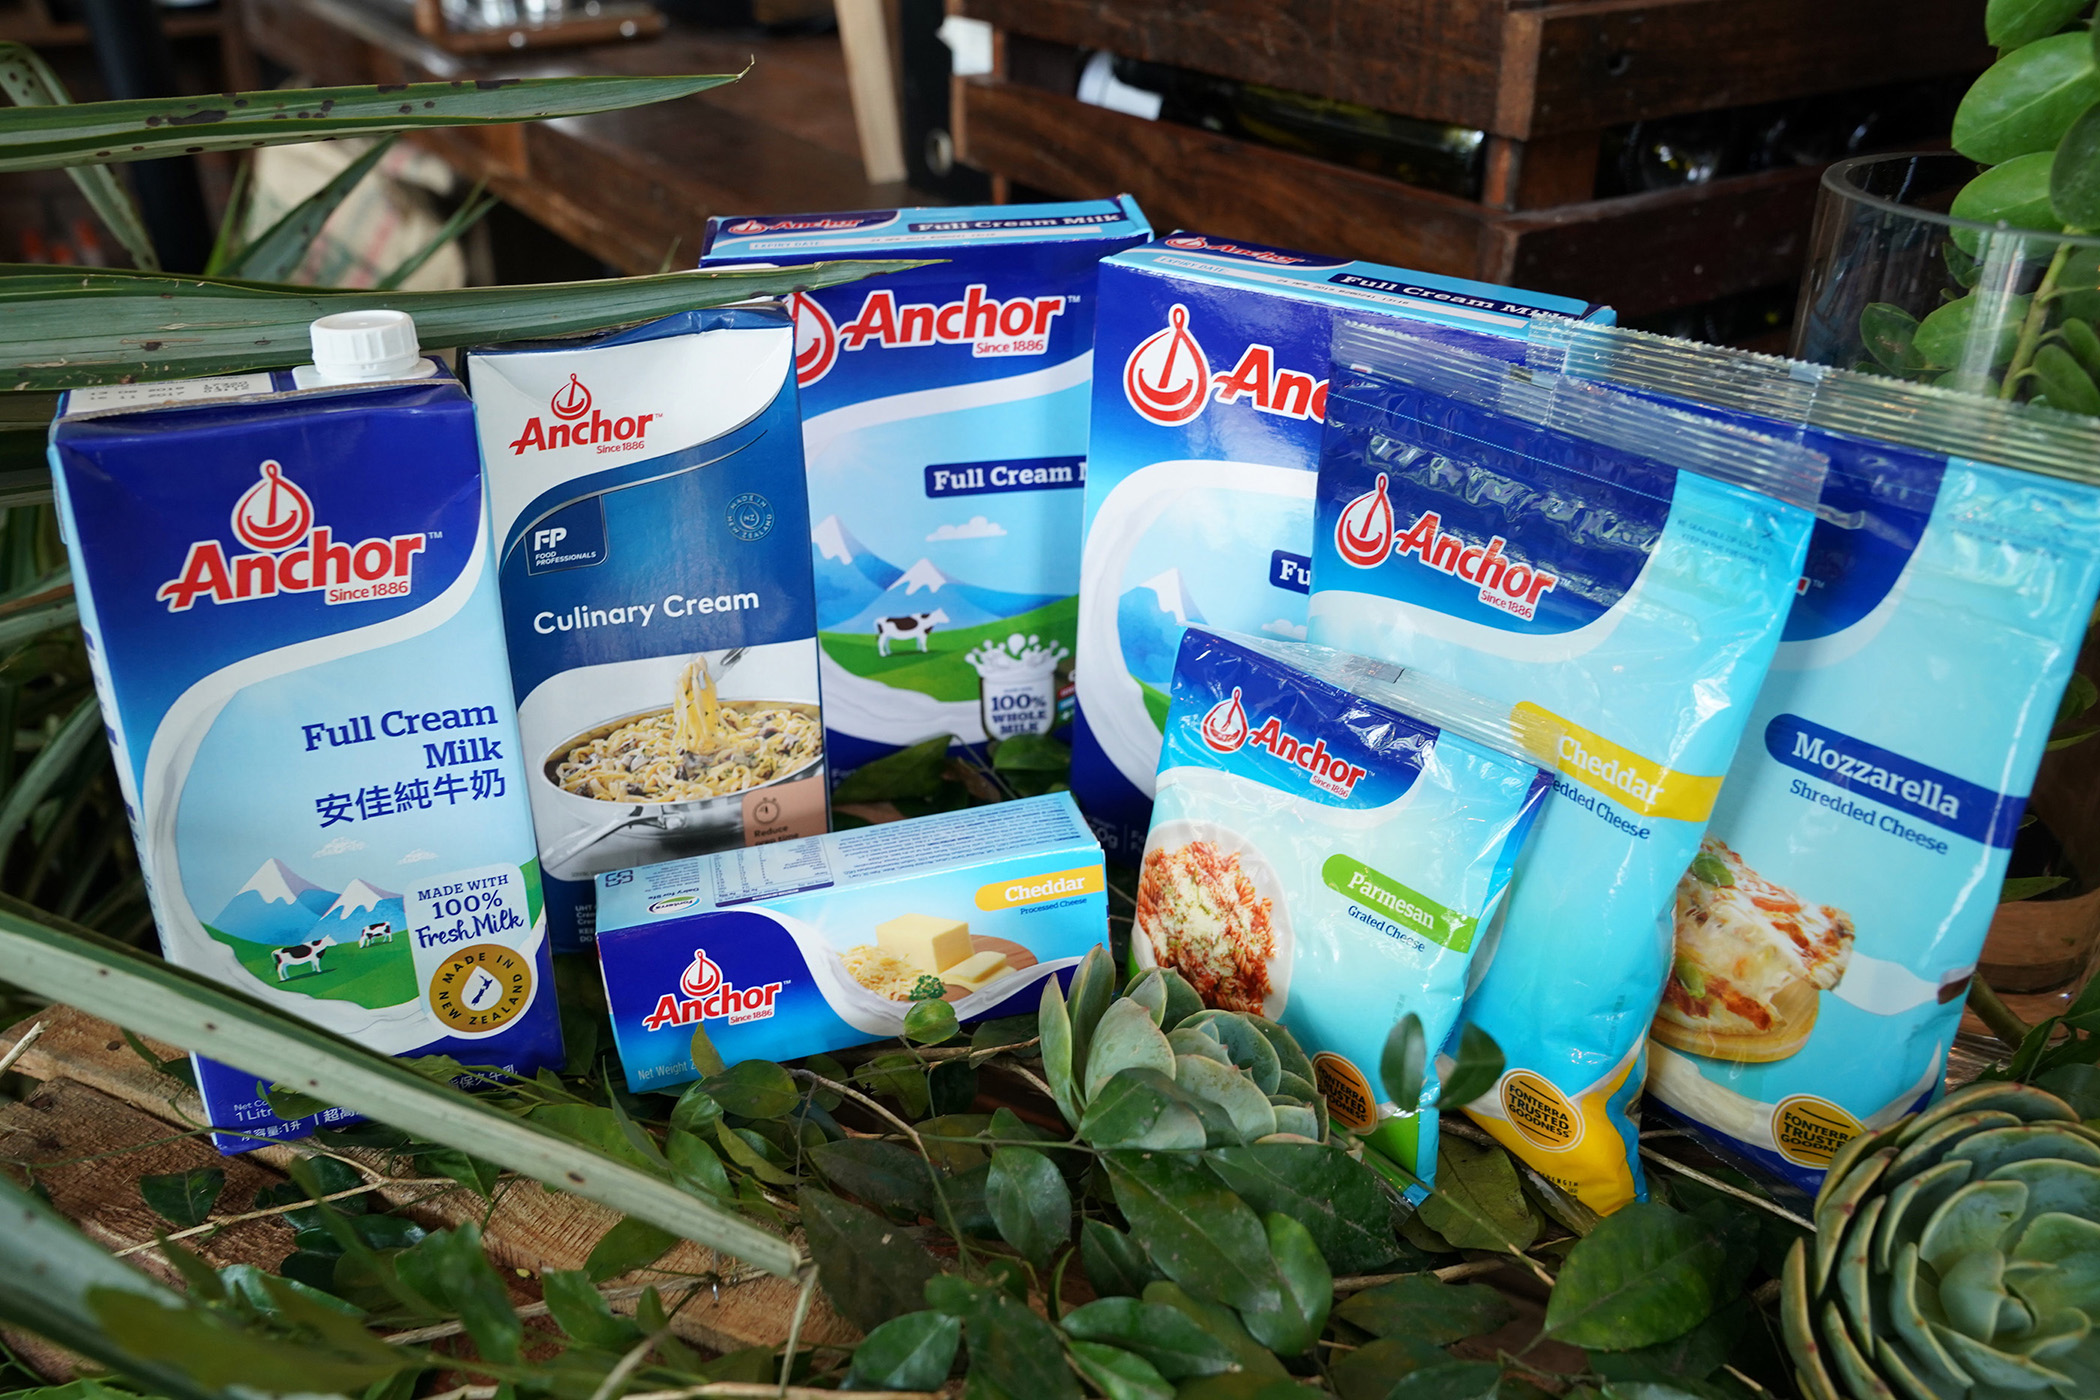 Anchor's wide range of dairy products